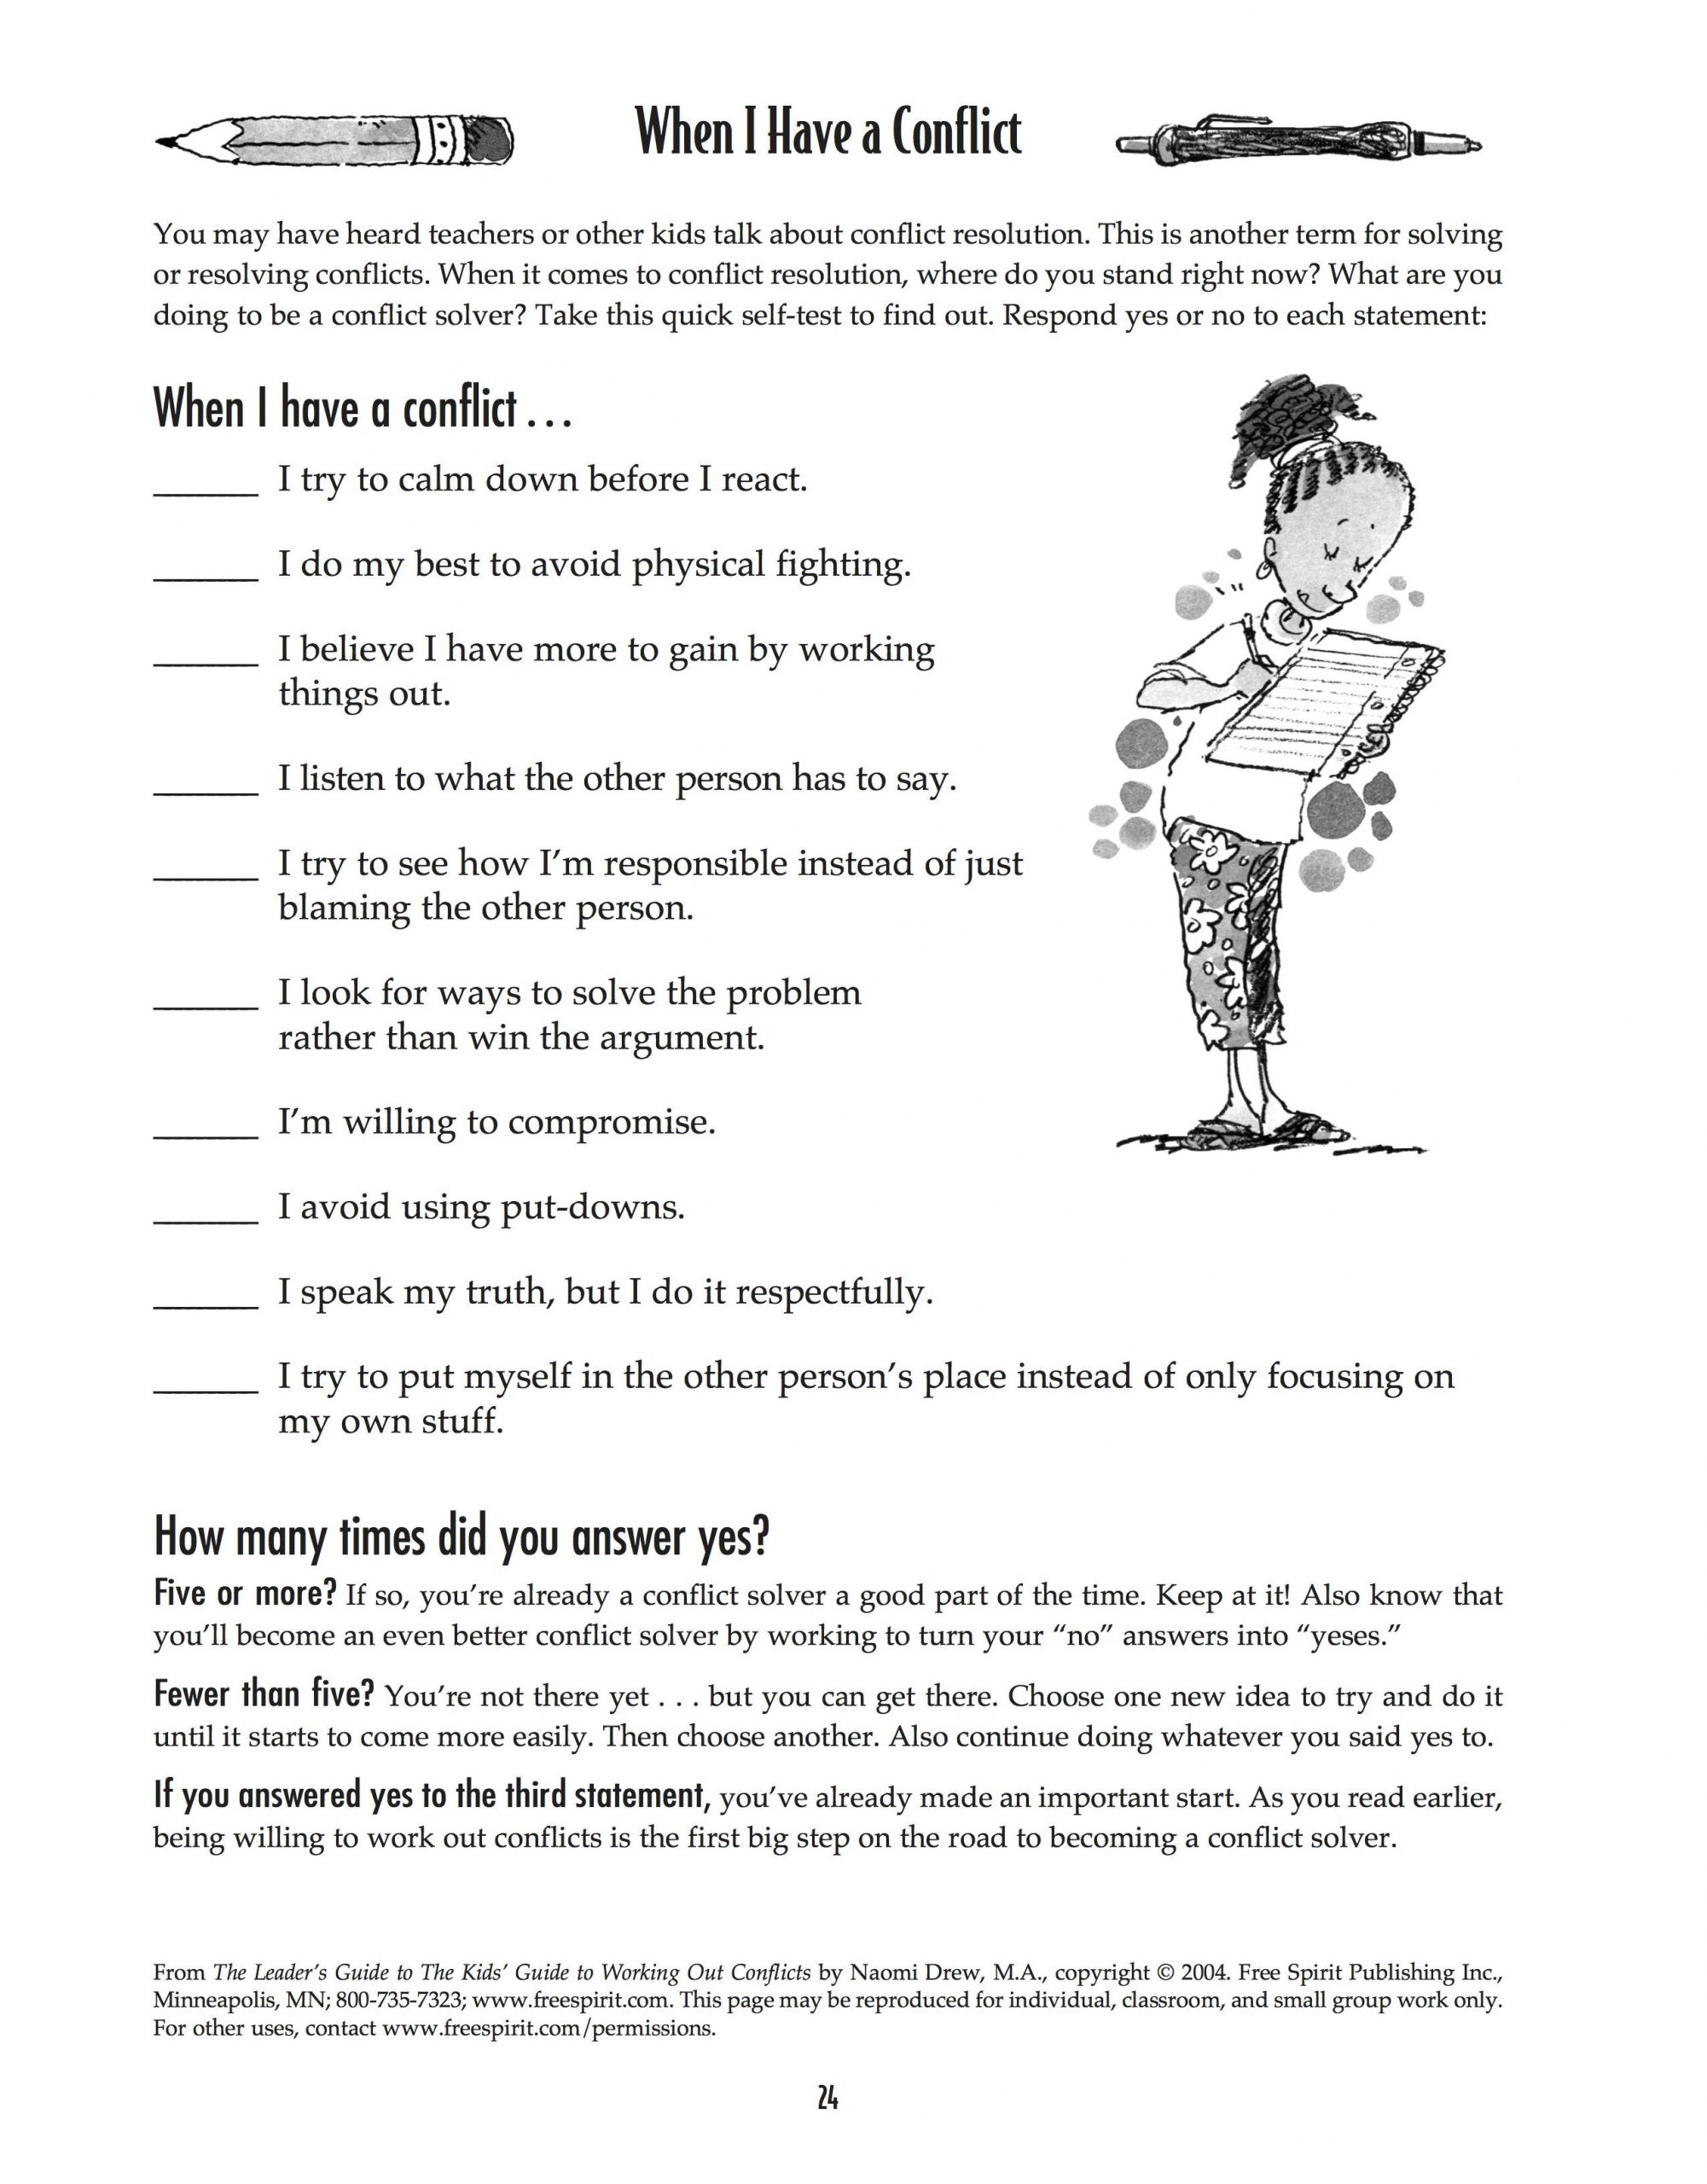 Conflict Worksheets for Middle School Free Printable Worksheet when I Have A Conflict A Quick